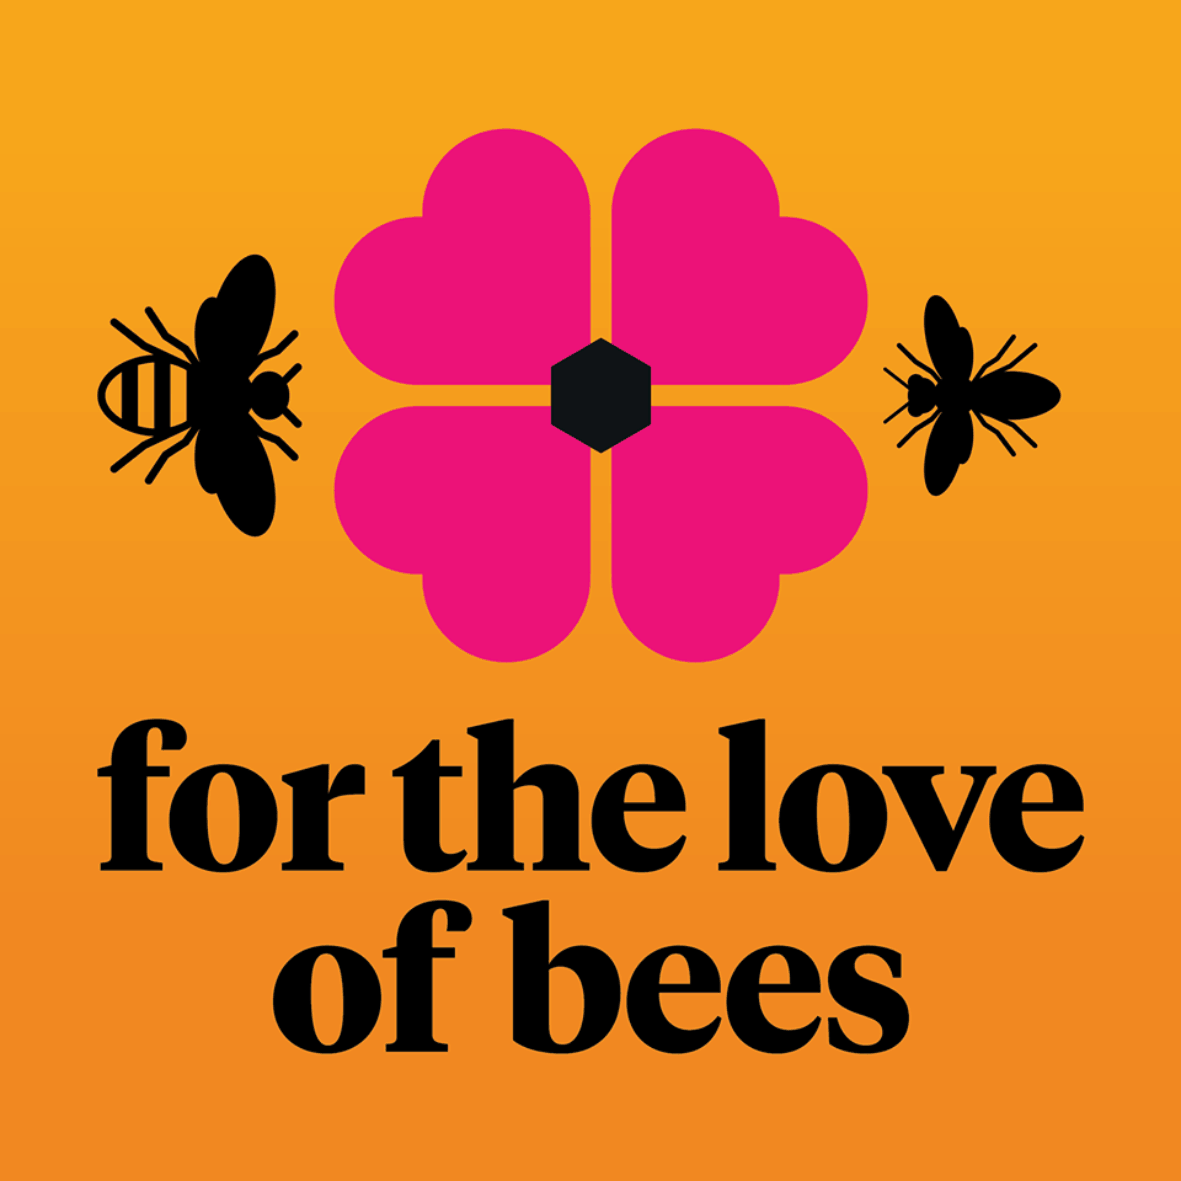 For The Love of Bees is supported by Montys Promotions